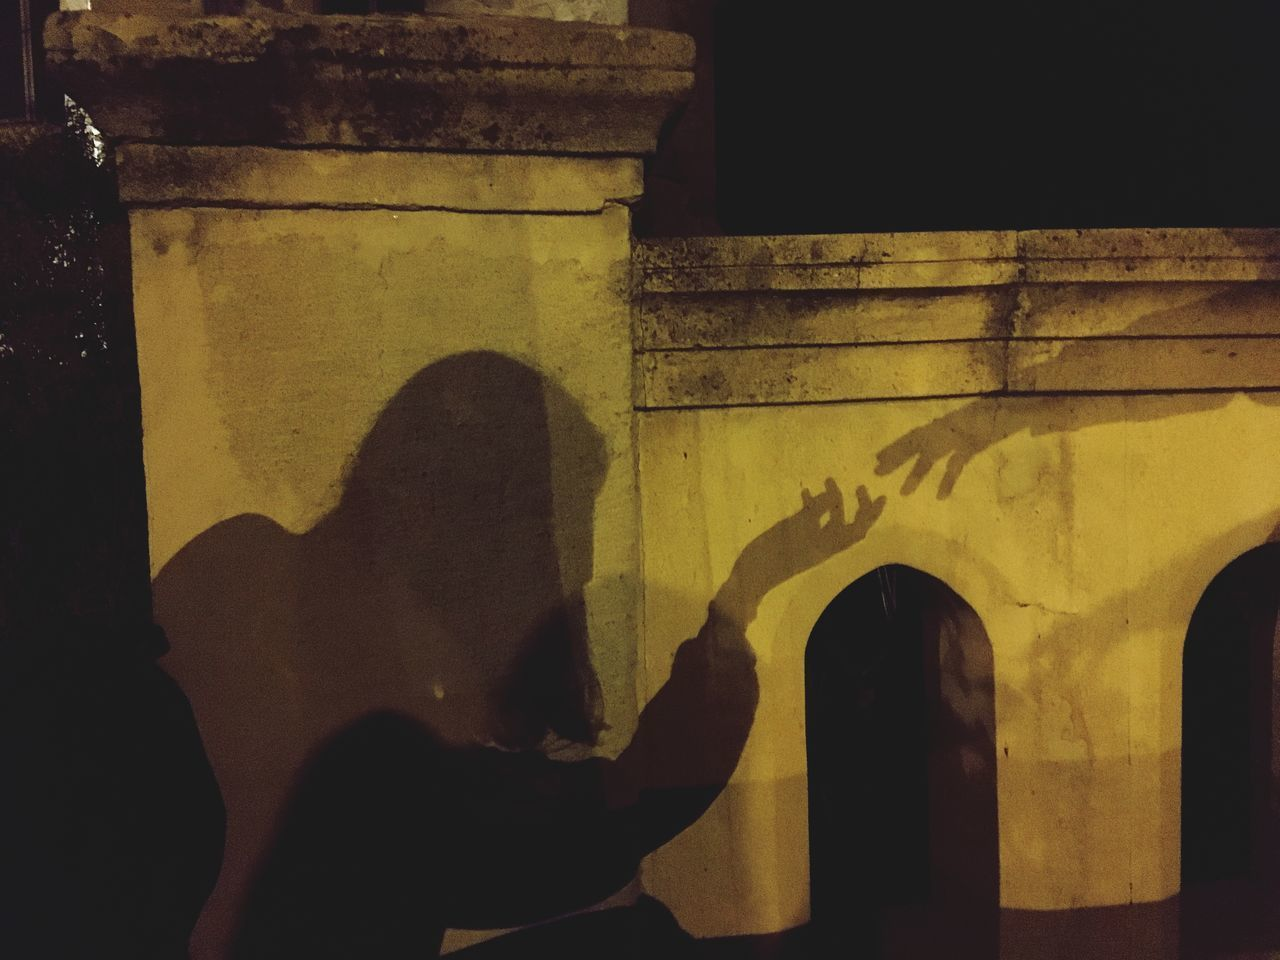 SHADOW OF PEOPLE STANDING ON WALL